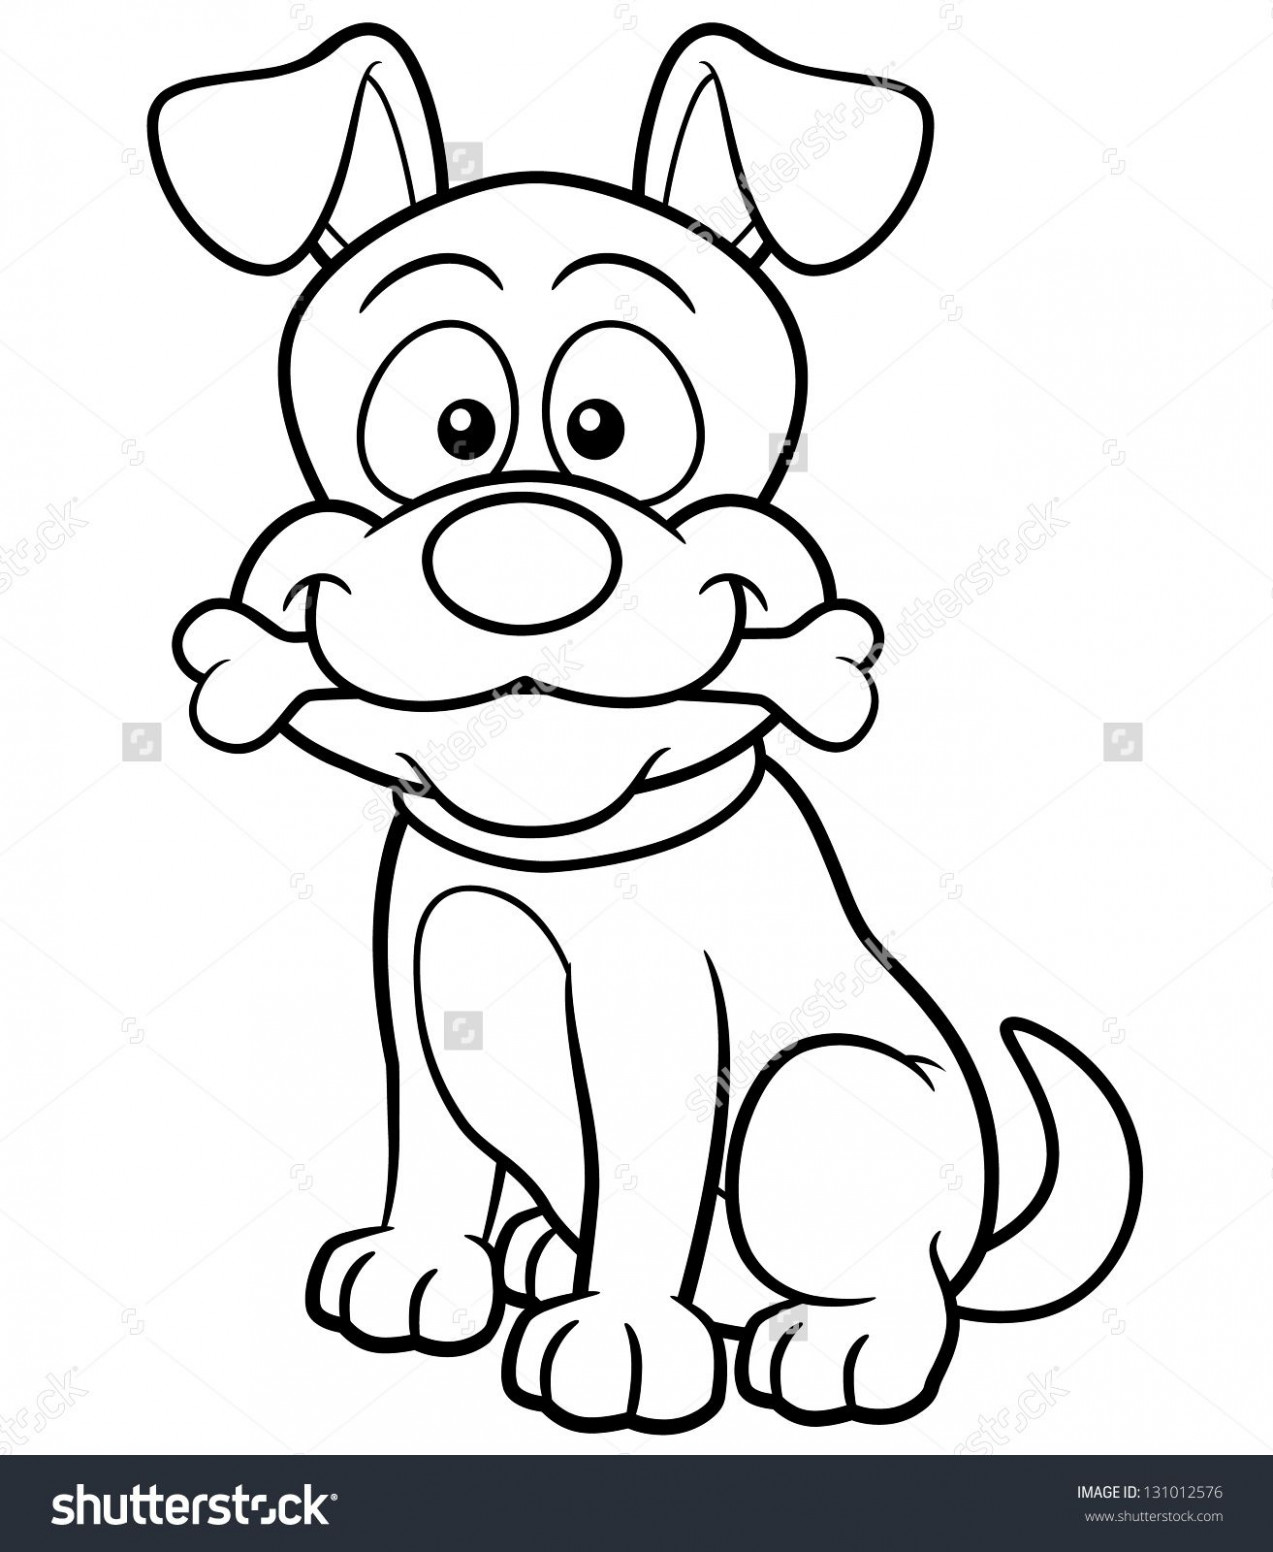 Vector illustration of Cartoon Dog - Coloring book | Dogs ...